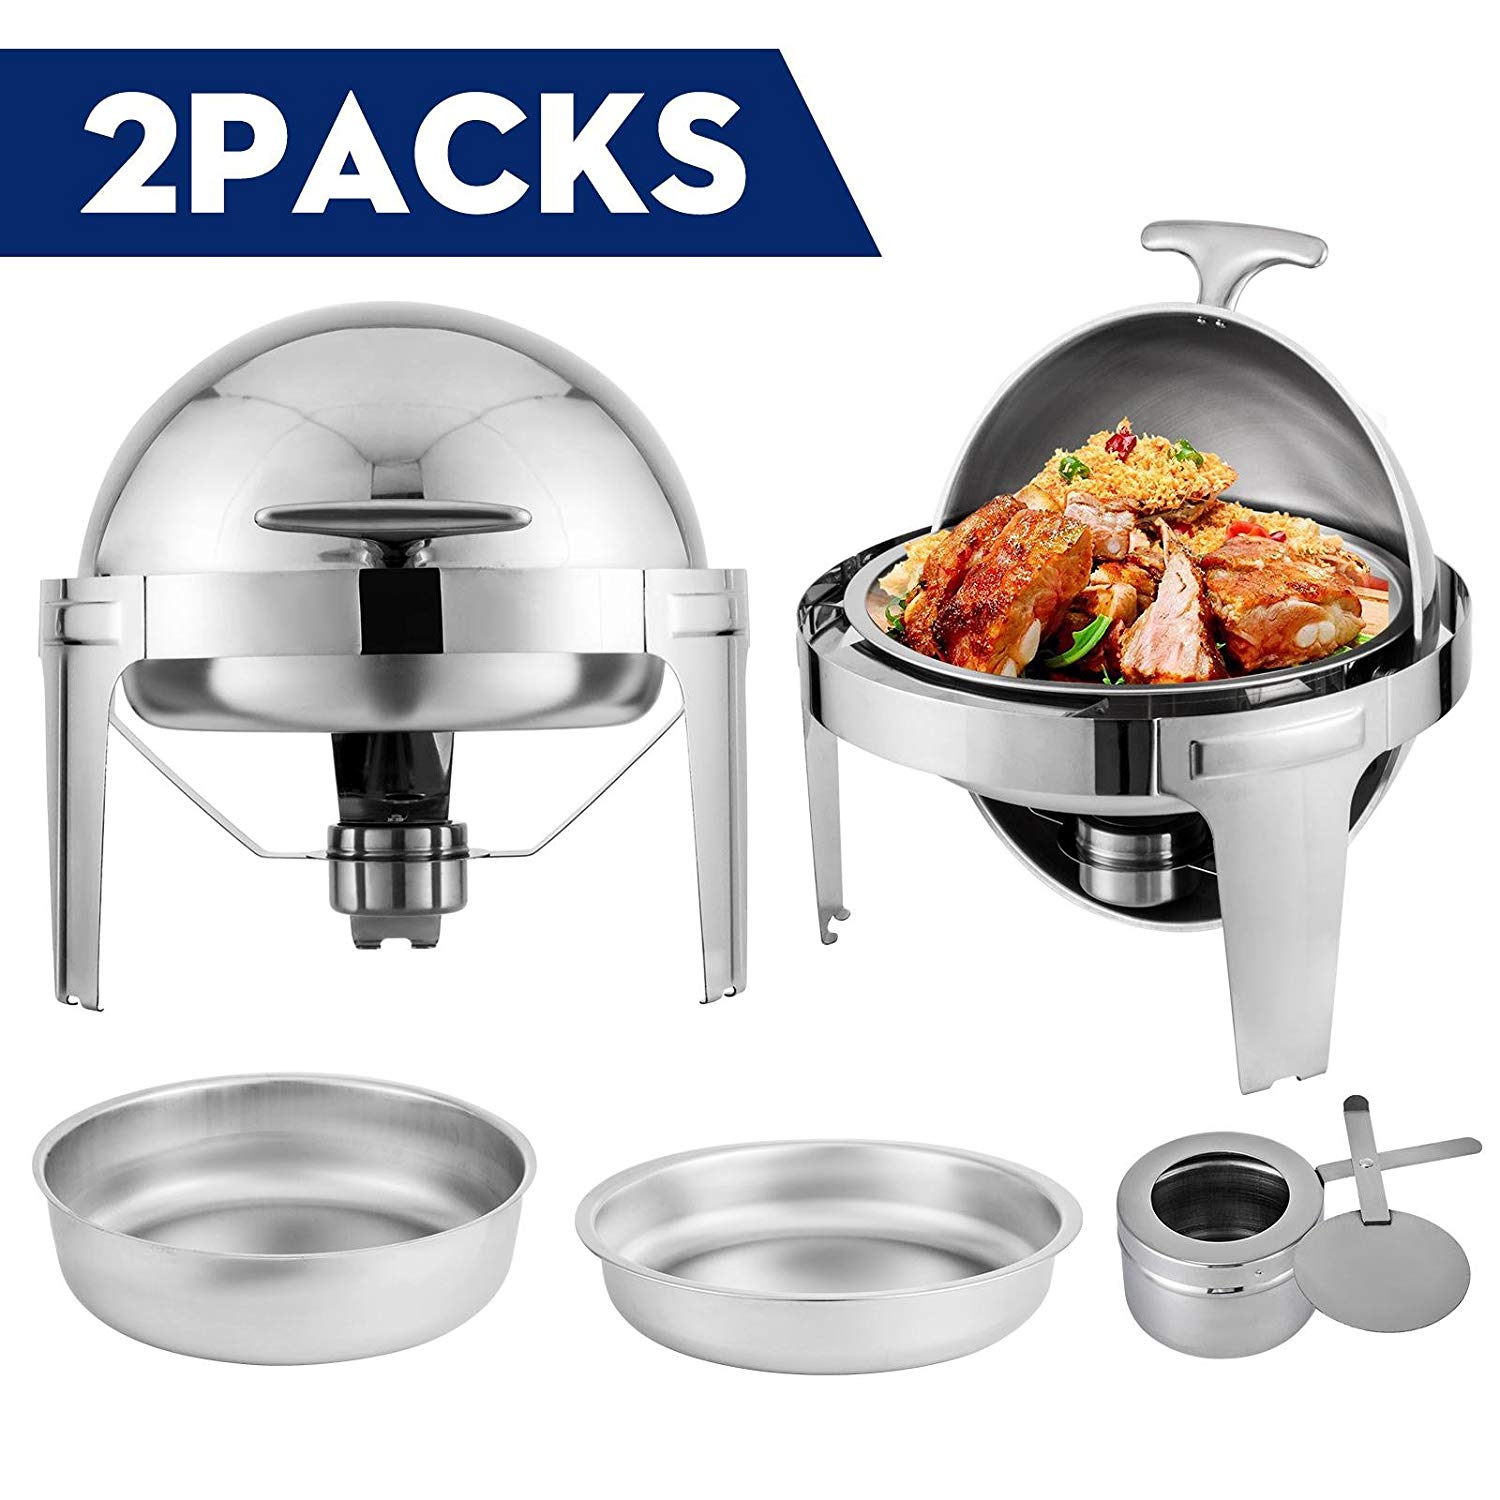 Happibuy 2 Packs Stainless Steel Chafing Dish 6 Quart Round Chafer Roll Top Chafer for Catering Buffet Warmer Set with Pans and Fuel Holders (2 Packs Stainless Steel Chafing Dish)